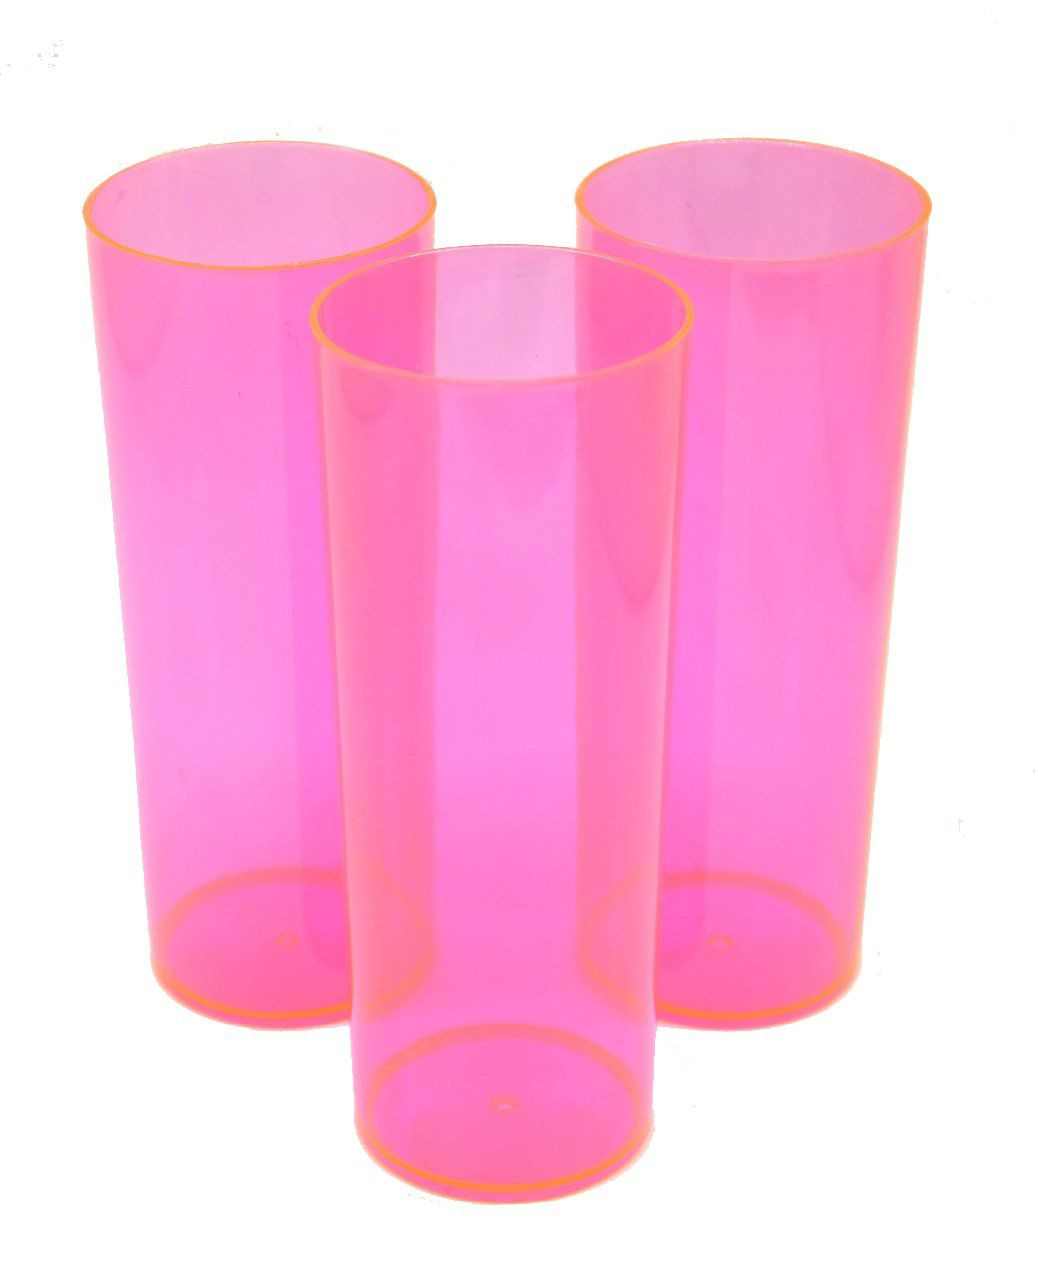 Long Drink p/ Transfer 350ml - Rosa Neon